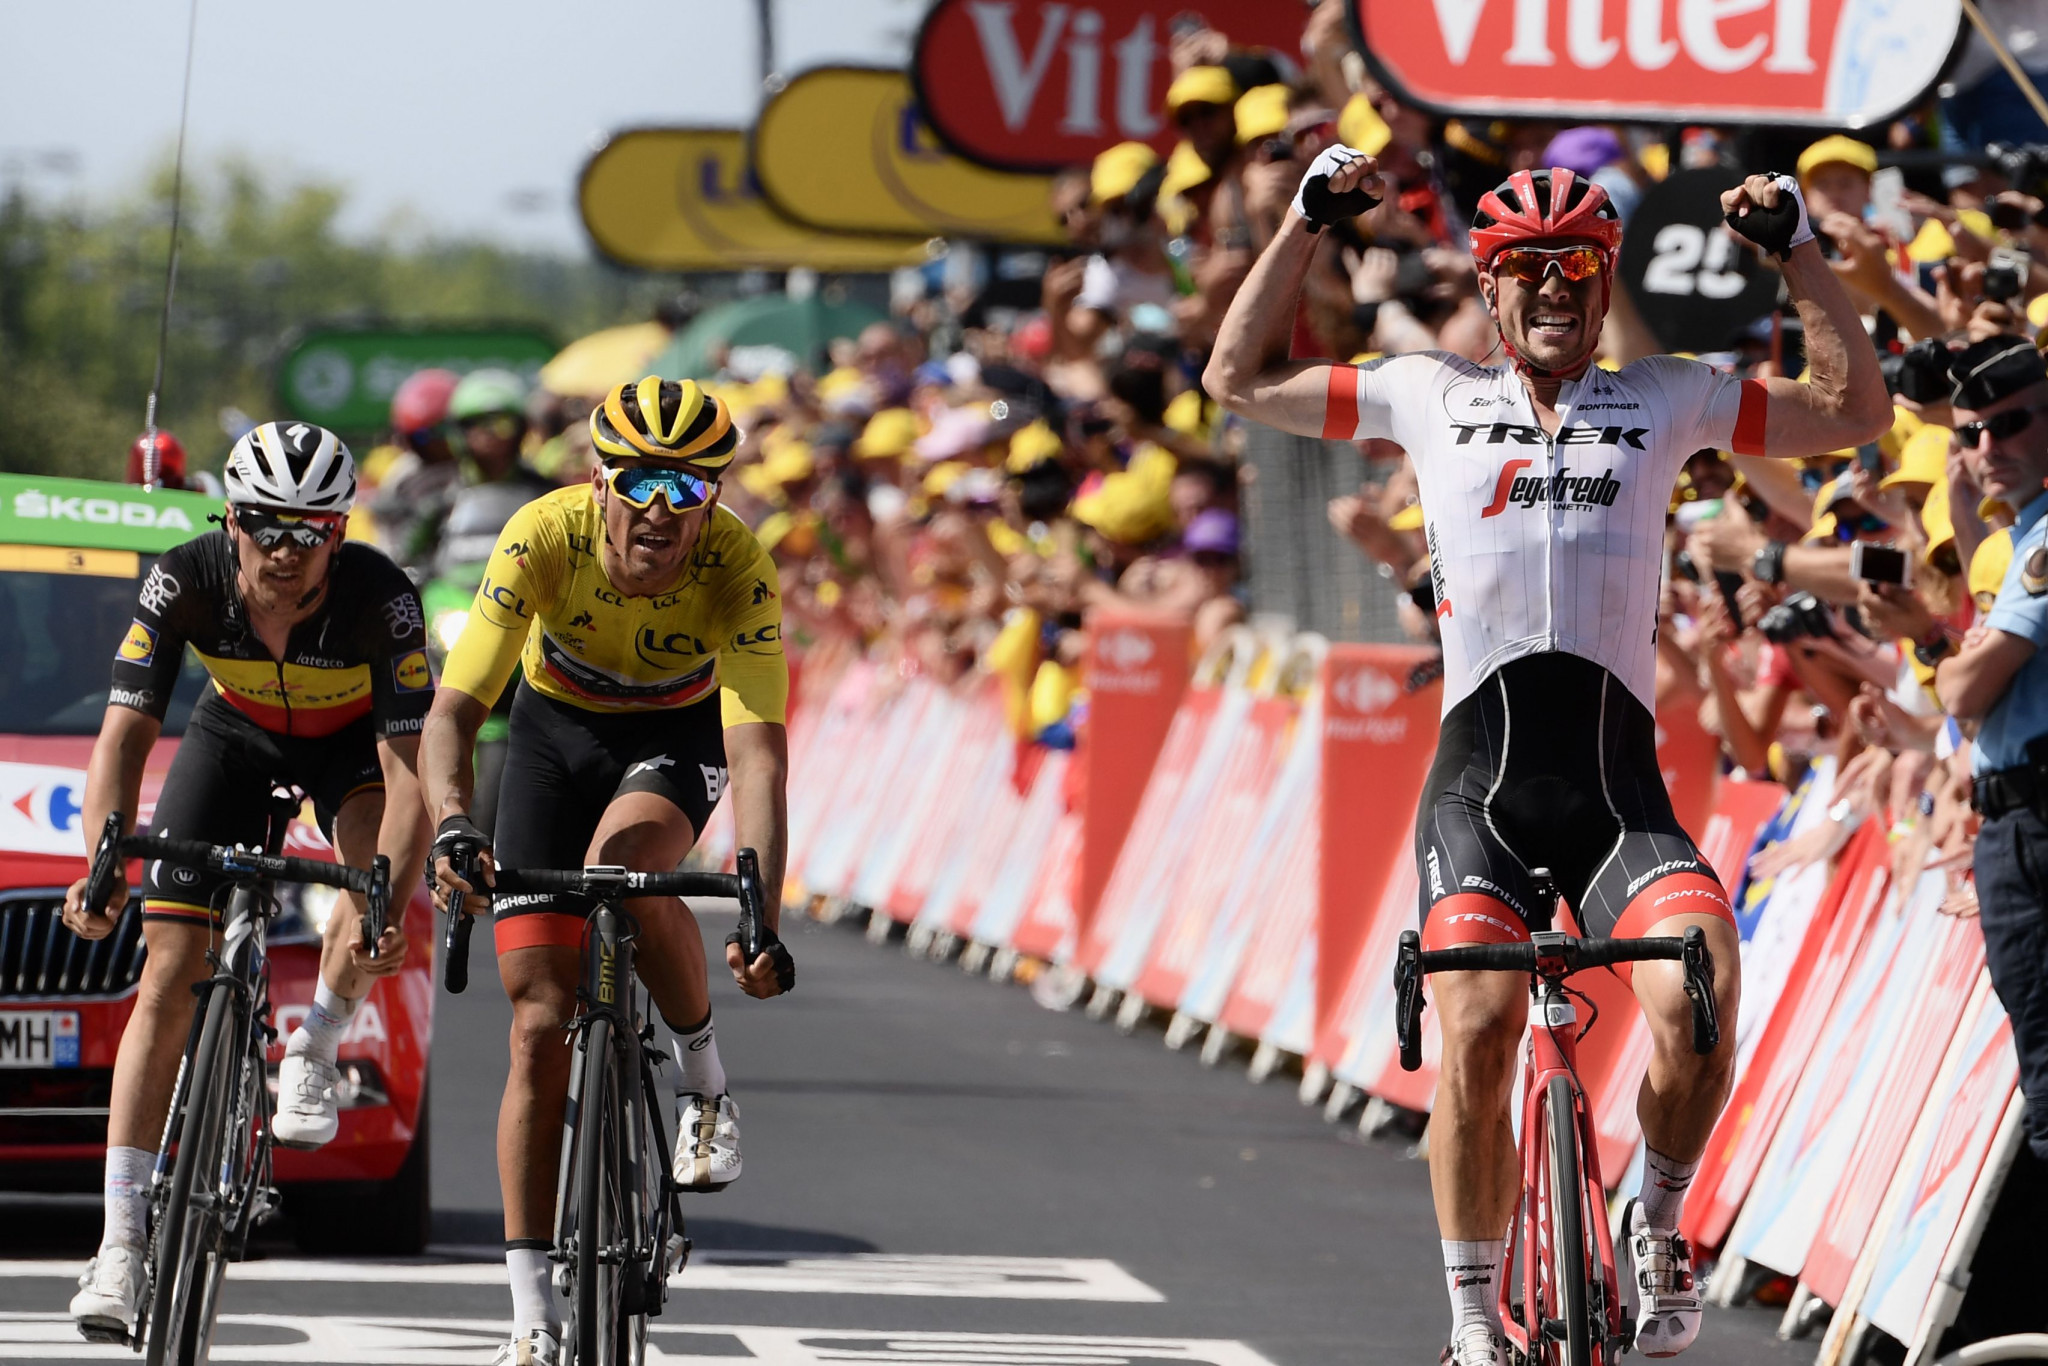 Degenkolb earns emotional win as cobbled stage tests Tour de France hopefuls